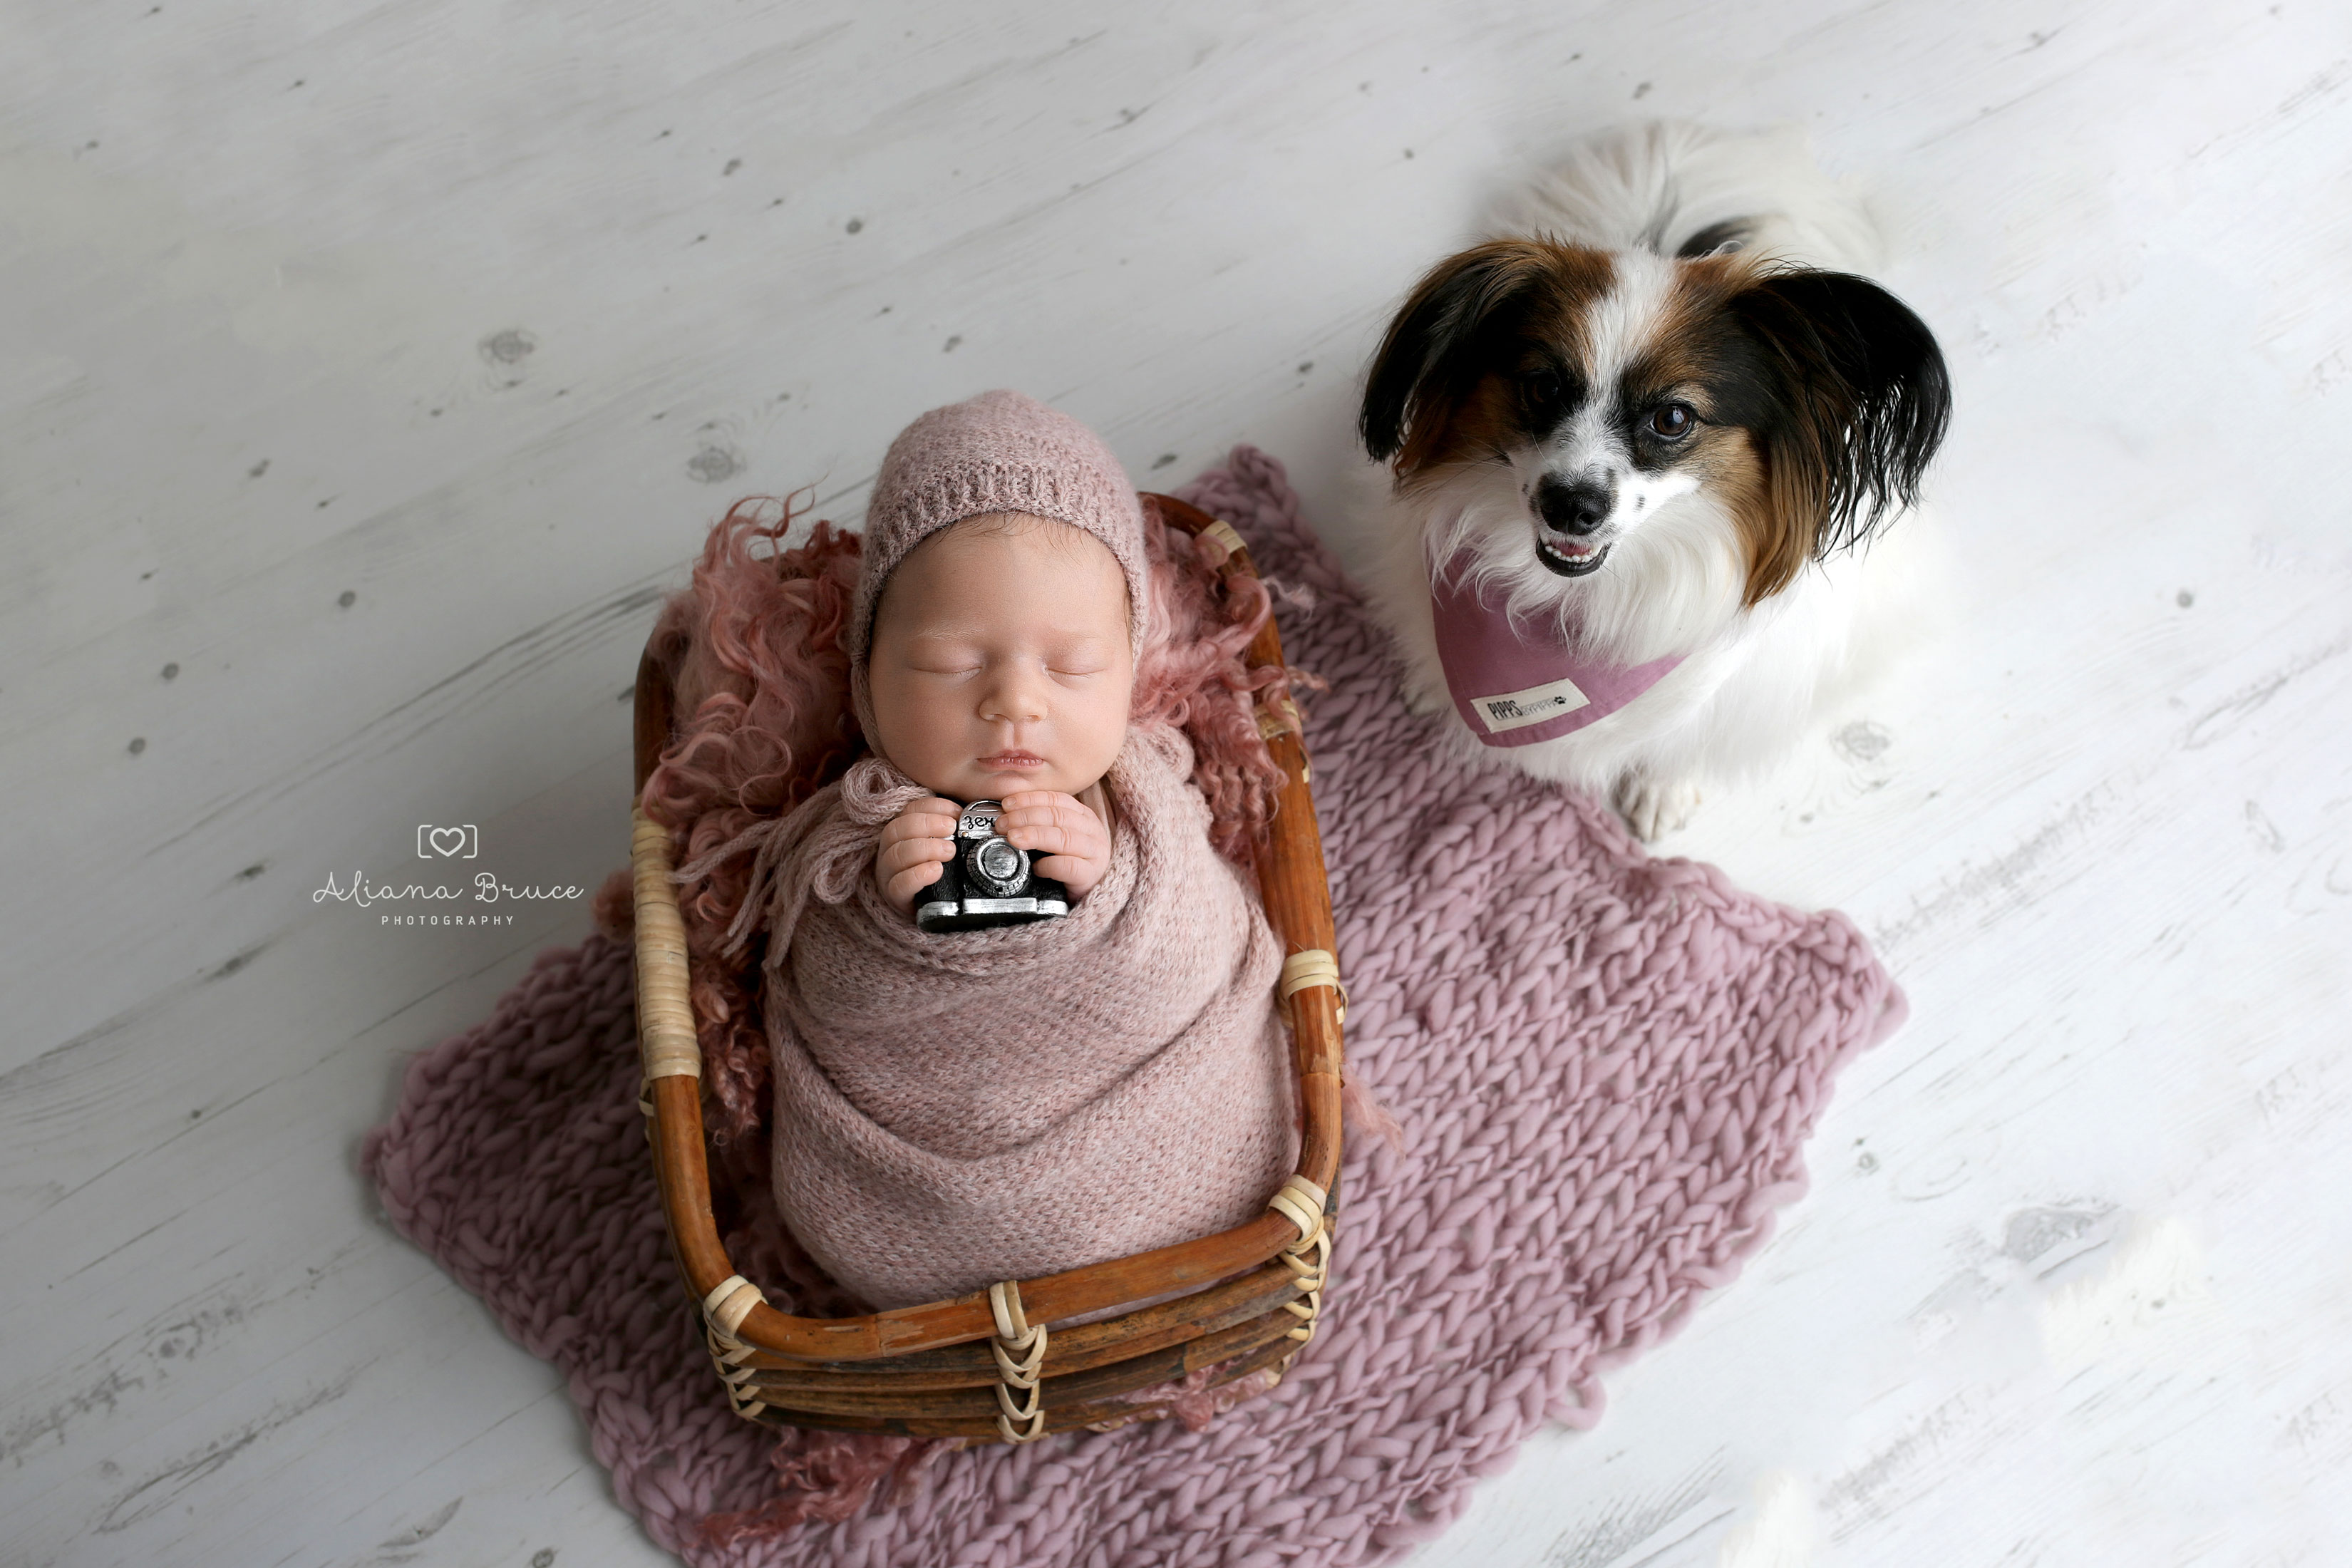 Dog and Newborn Photoshoot